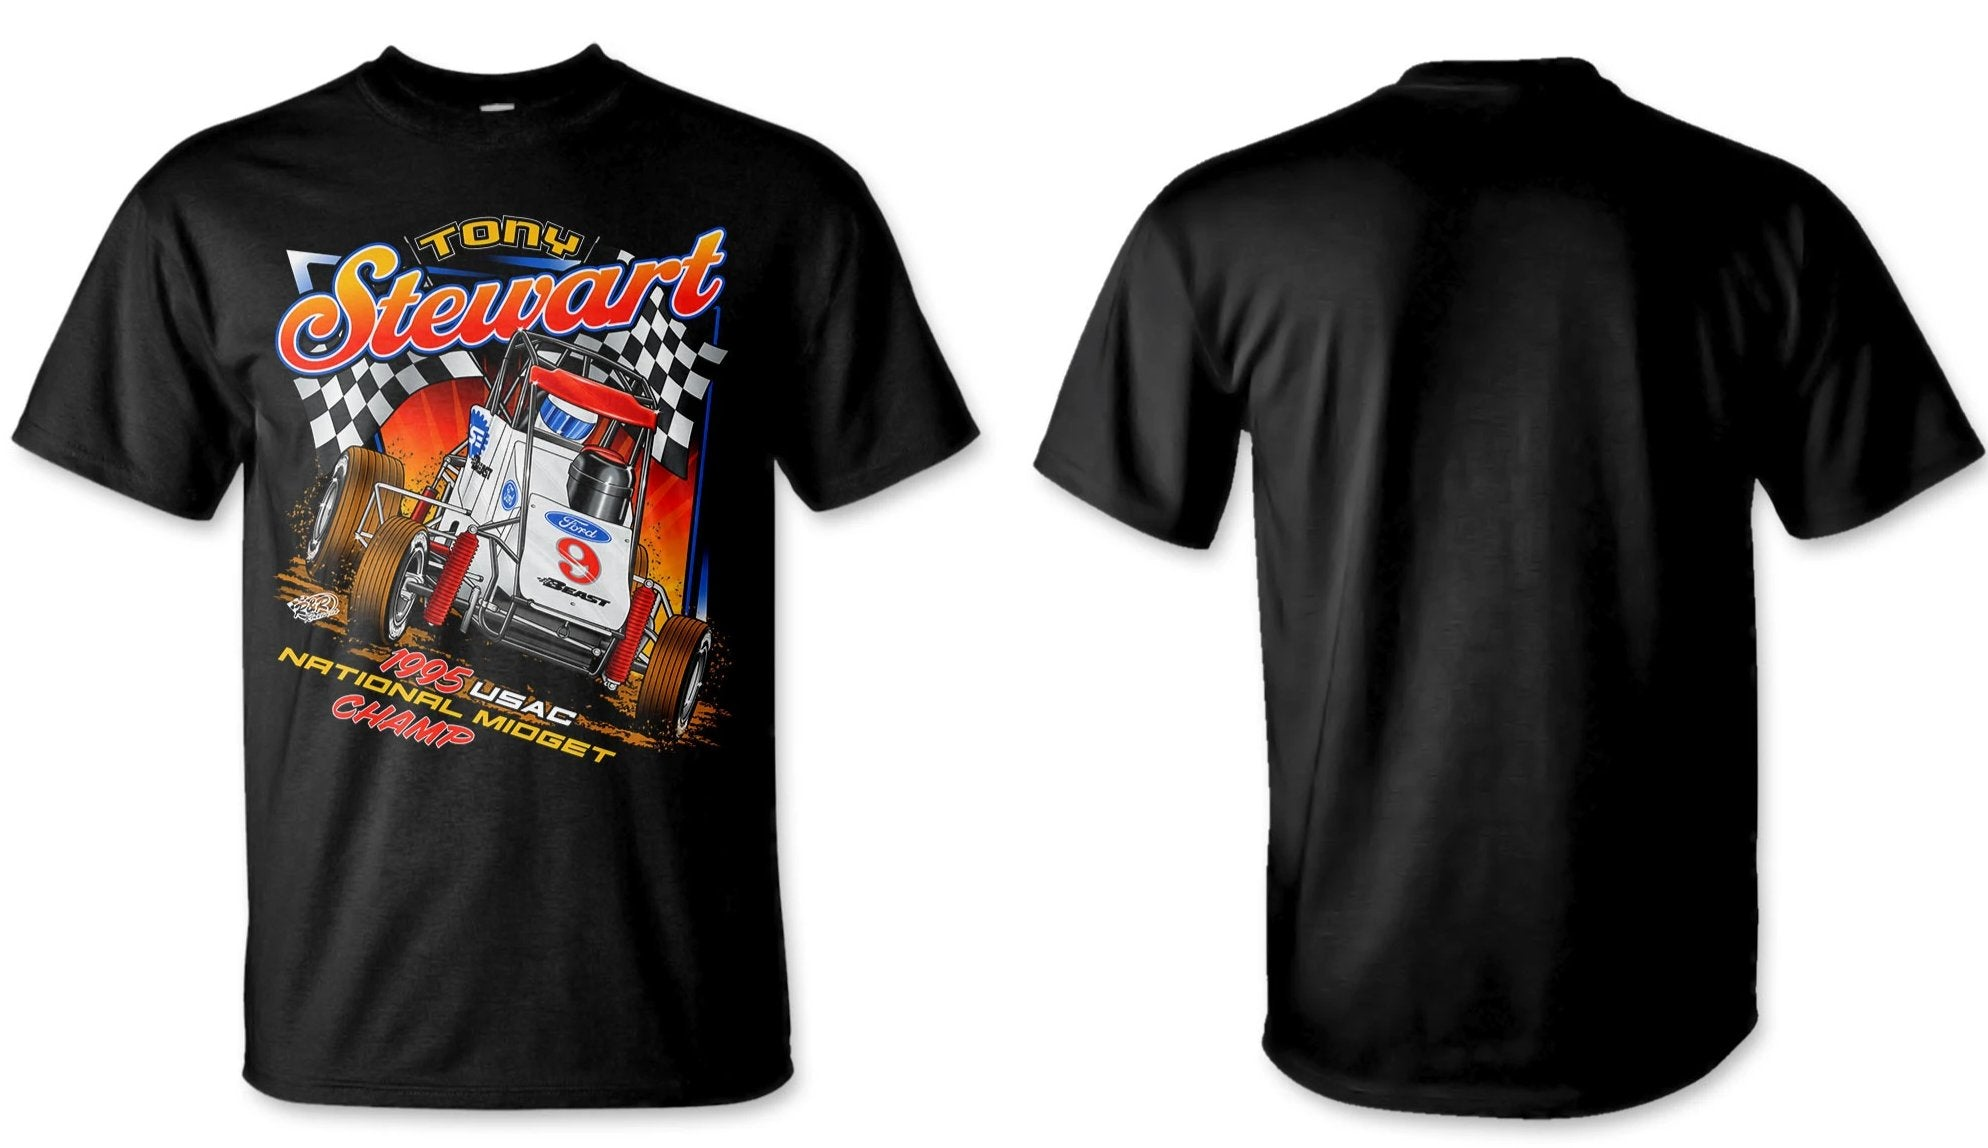 '95 Midget Champion T-Shirt (4454415106180)